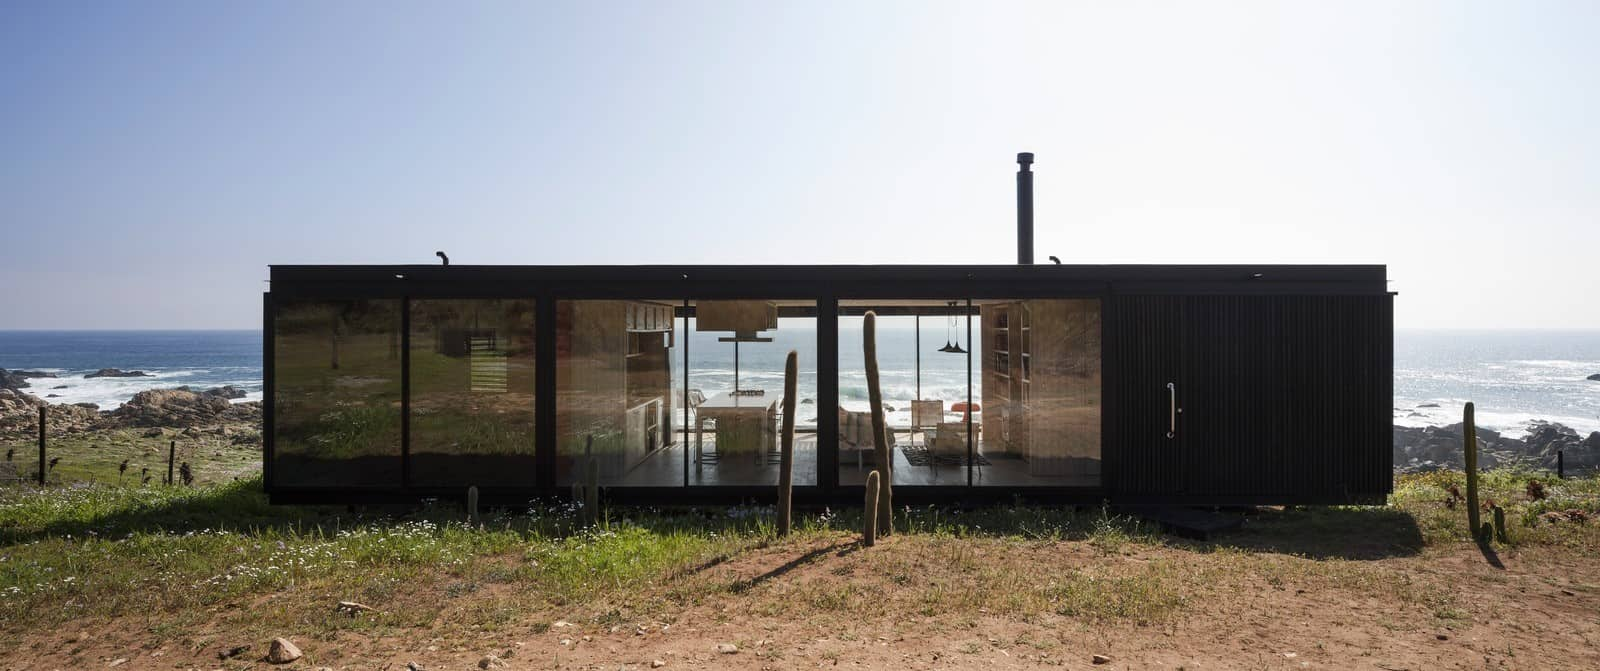 Remote Transportable Modular House in Chile by Felipe Assadi 6